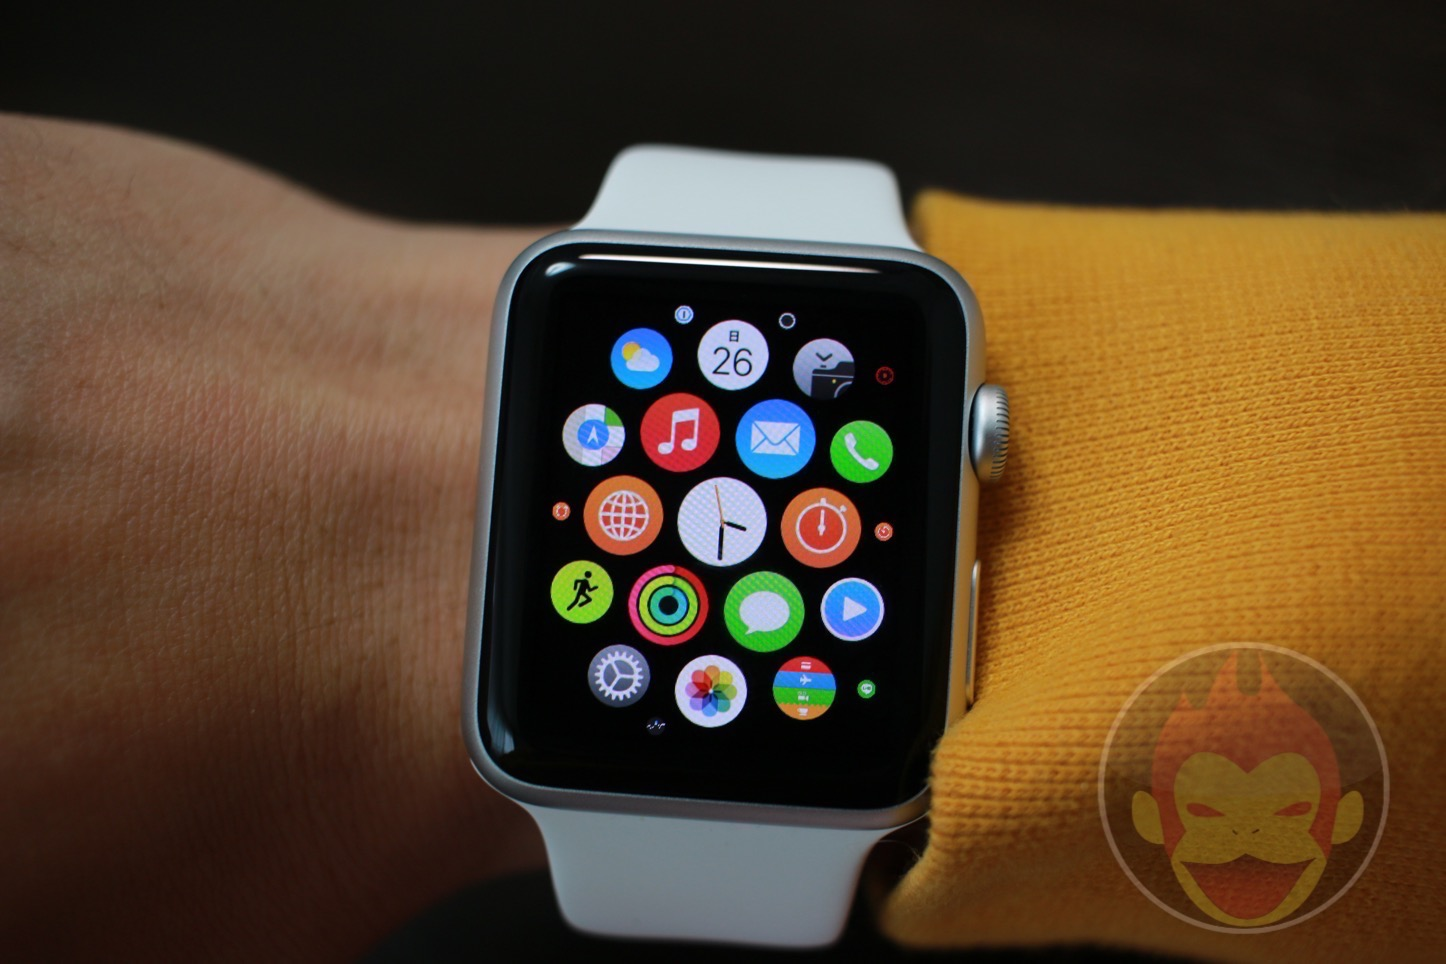 Apple-Watch-Apps-02.JPG